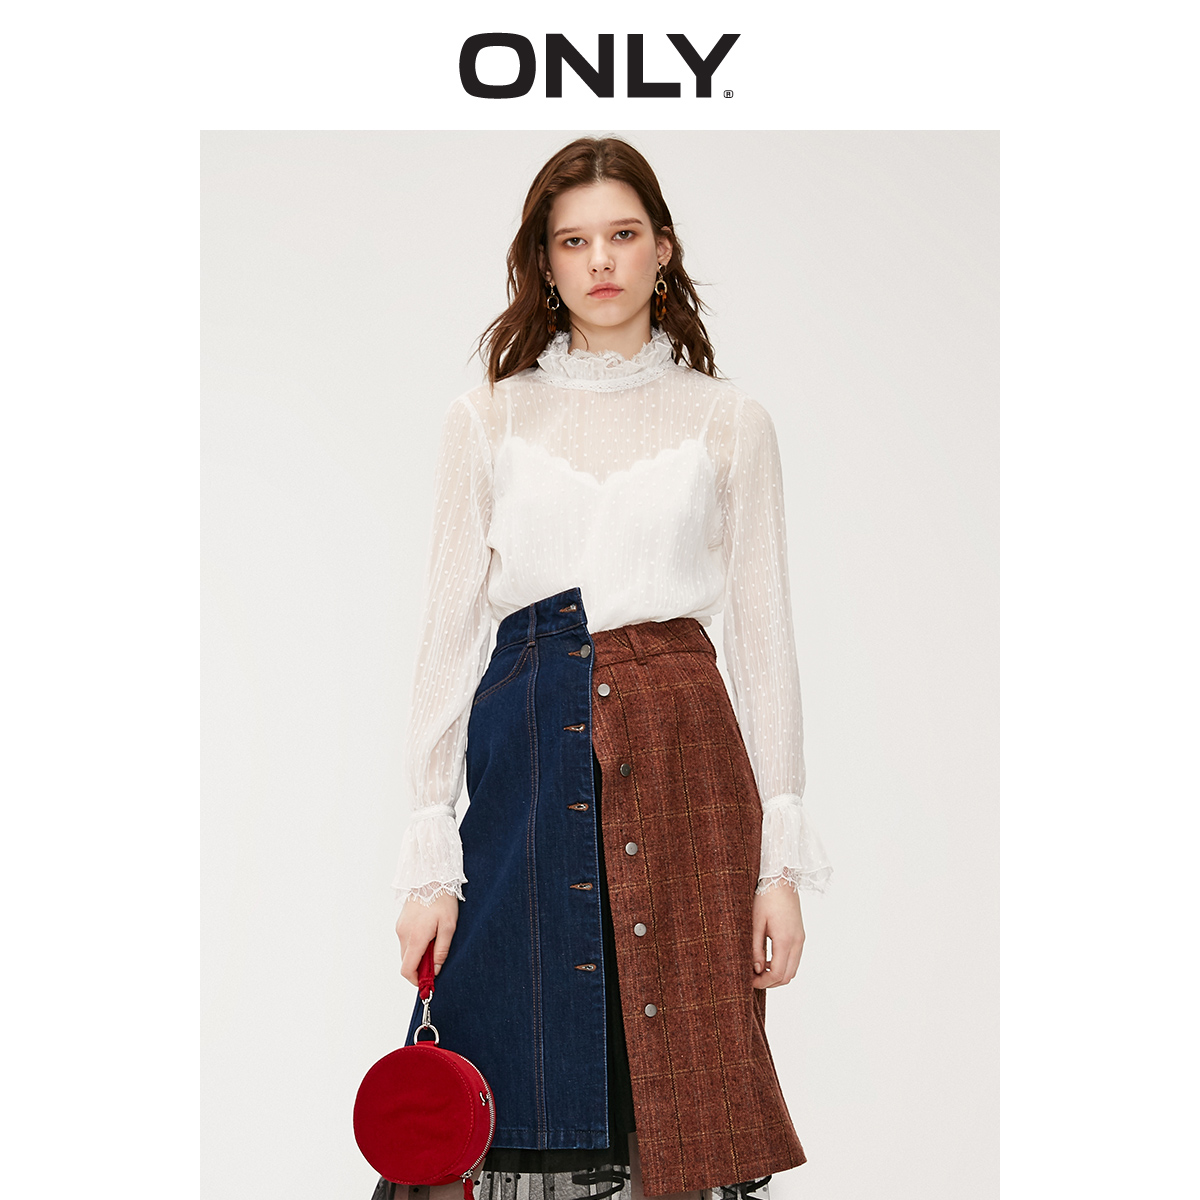 ONLY Women's Loose Fit Two-piece Lace Chiffon Shirt | 119151521